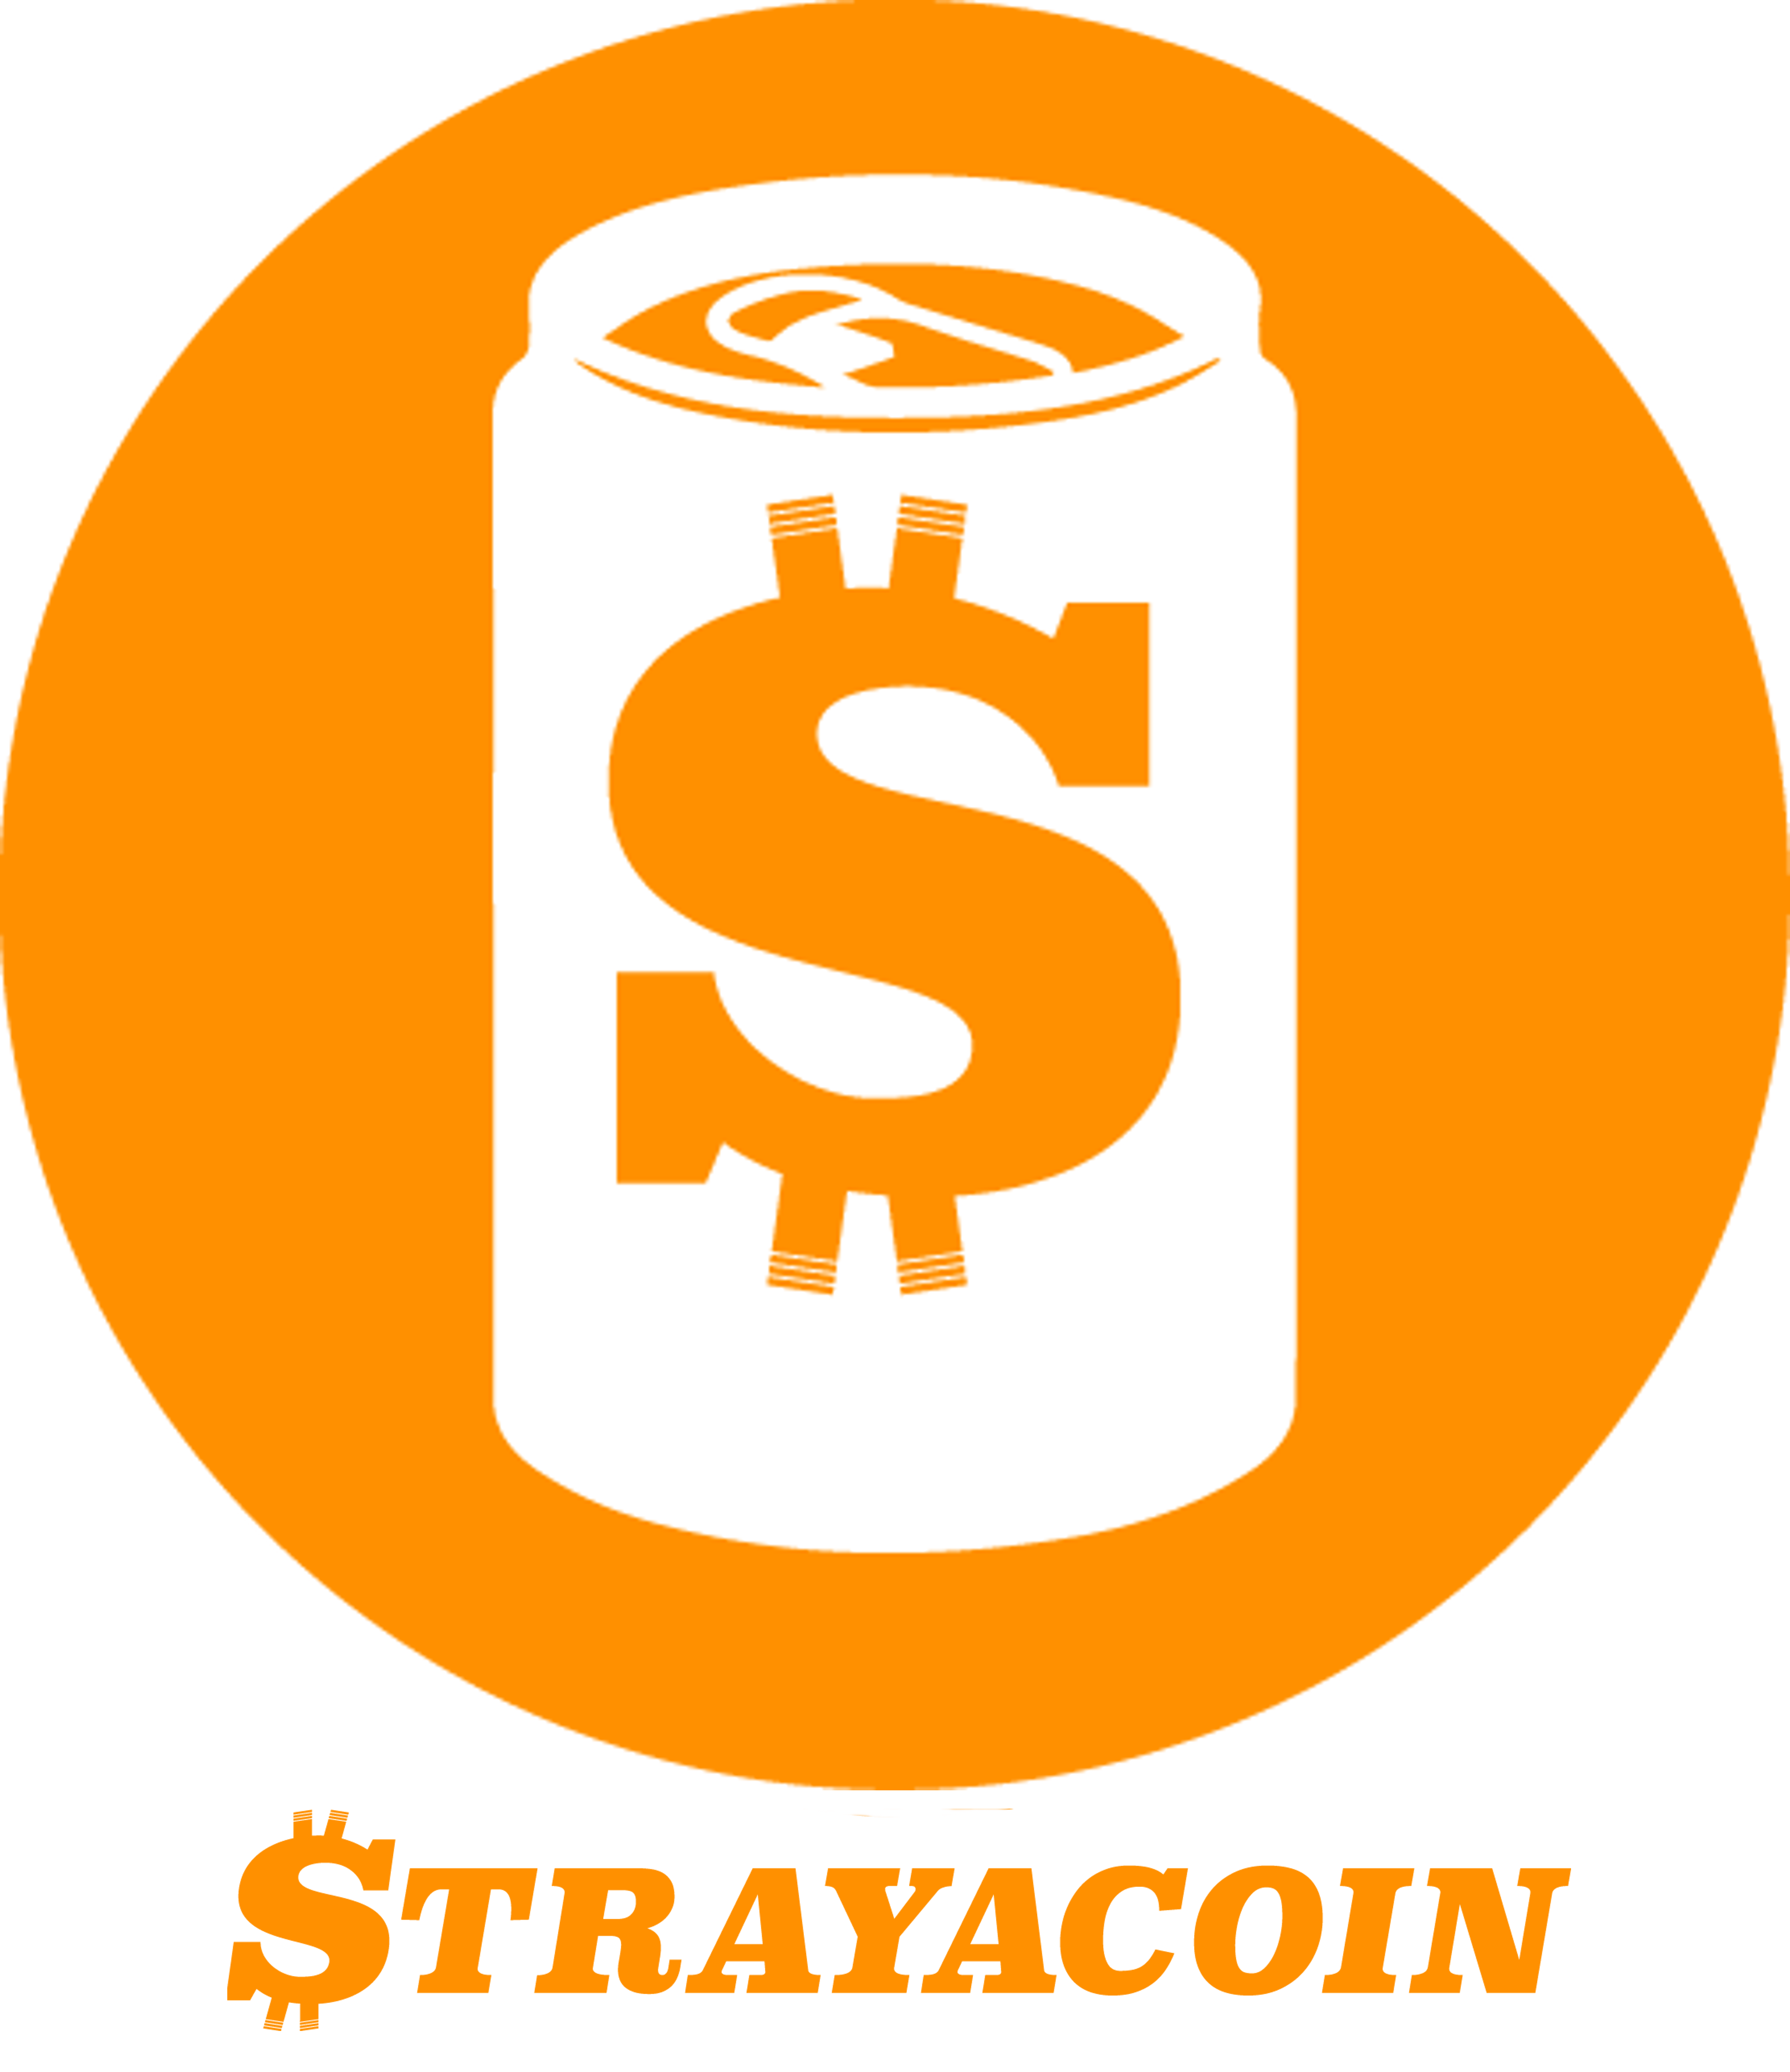 Strayacoin Crypto Currency Is One The Fastest Growing S With A Functional Use Case Paying For Goods And Services Businesses Have Quick Cost